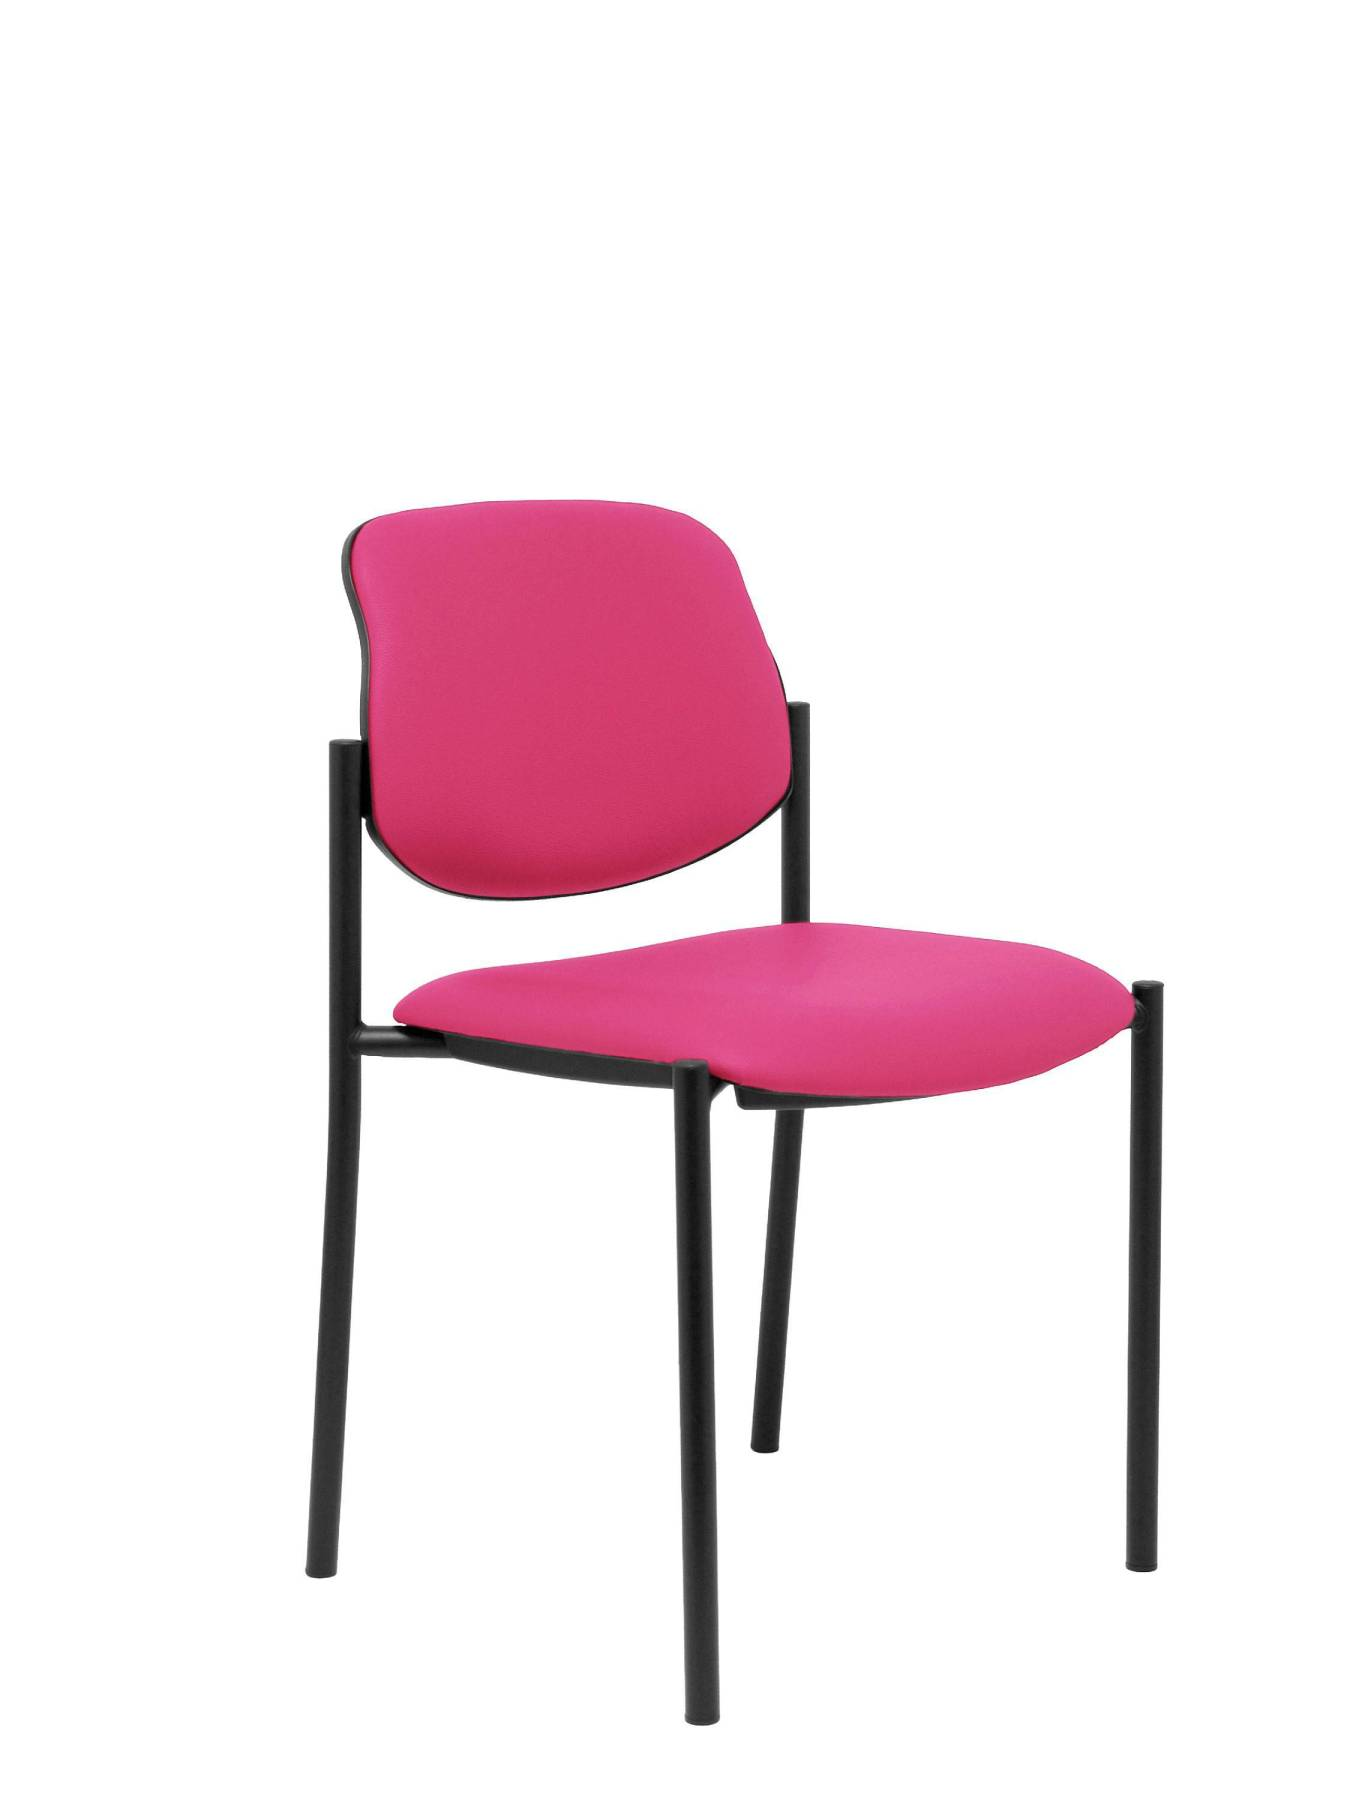 Visitor Chair 4's Topsy And Estructrua Negro-up Seat And Backstop Upholstered In Tissue Similpiel Pink Colour TAPHOLE AND